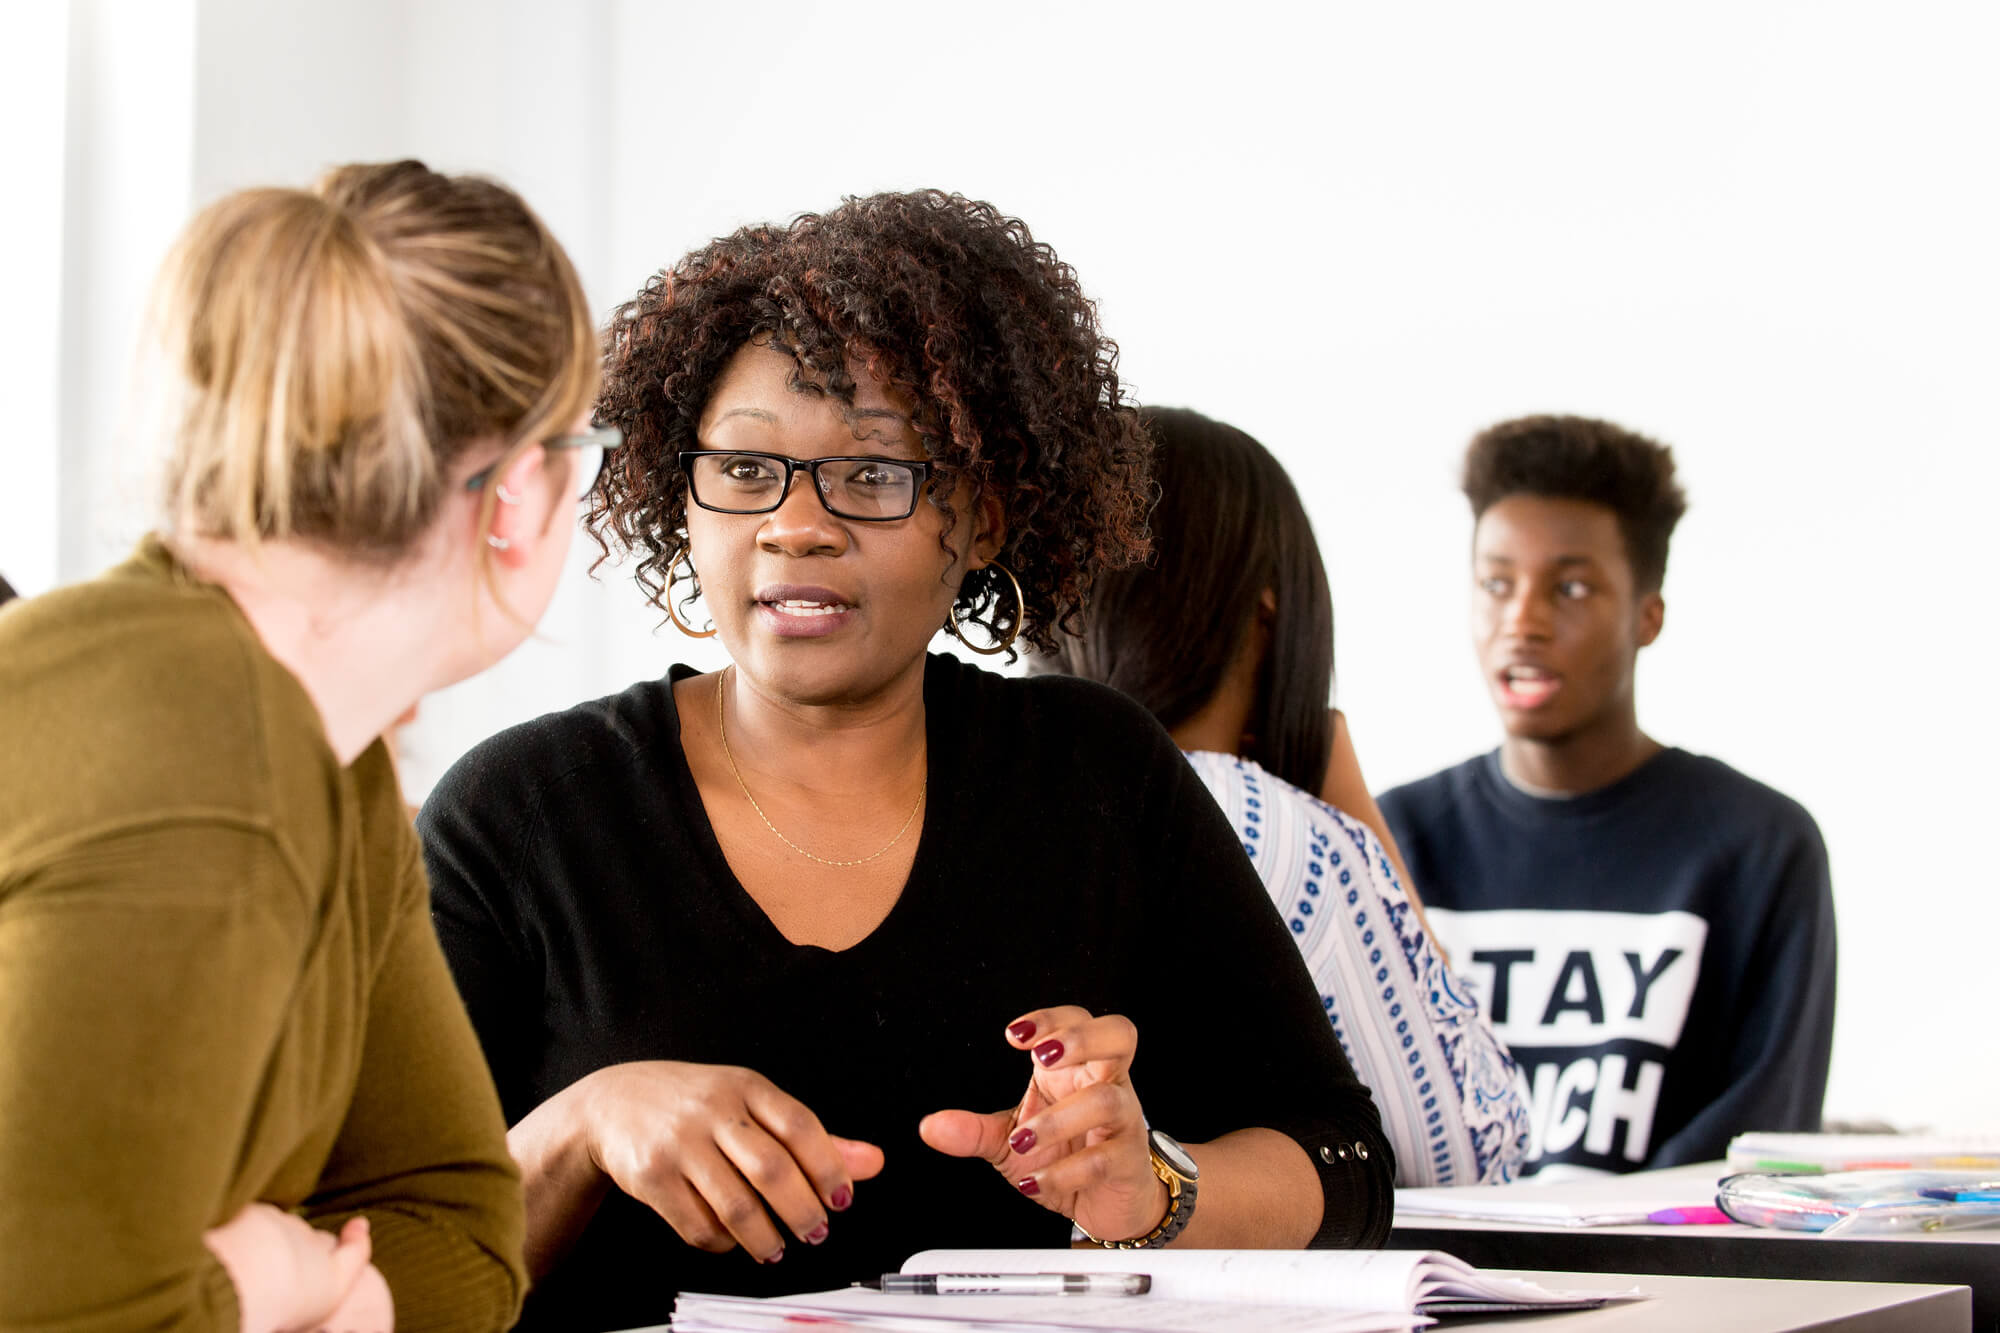 Counselling and Psychotherapy students take part in a discussion